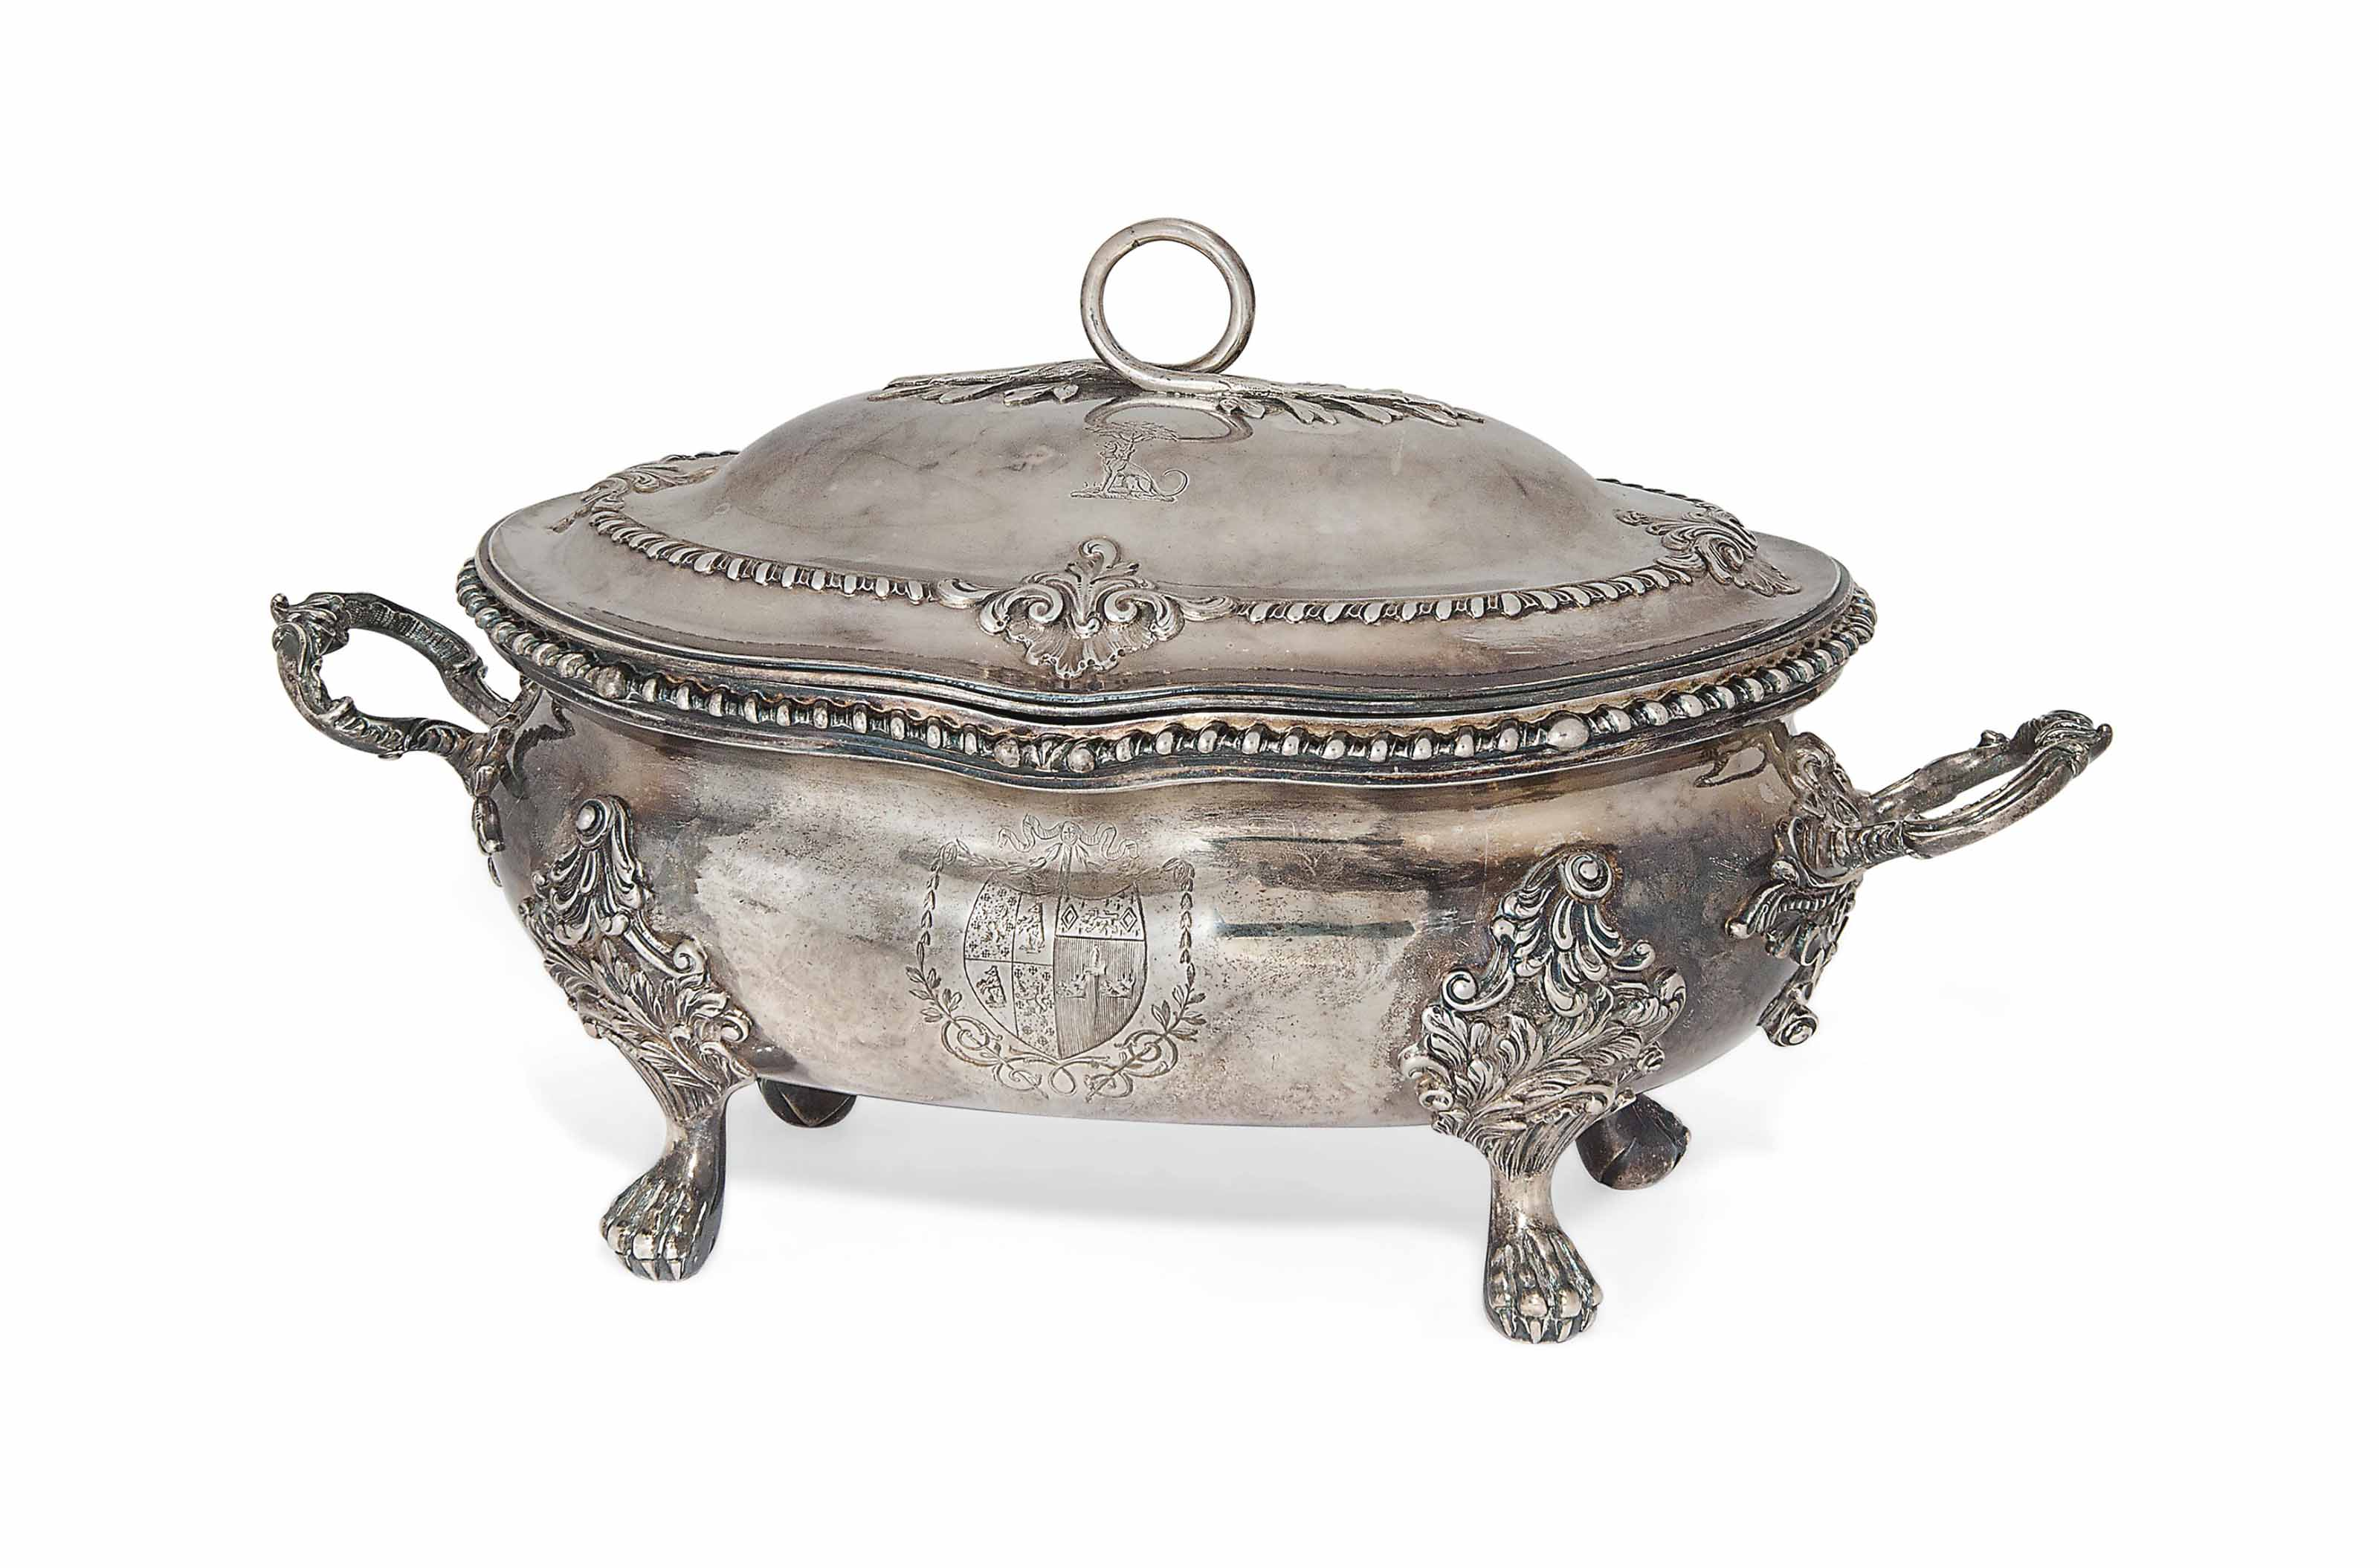 A GEORGE III SILVER SOUP TUREEN